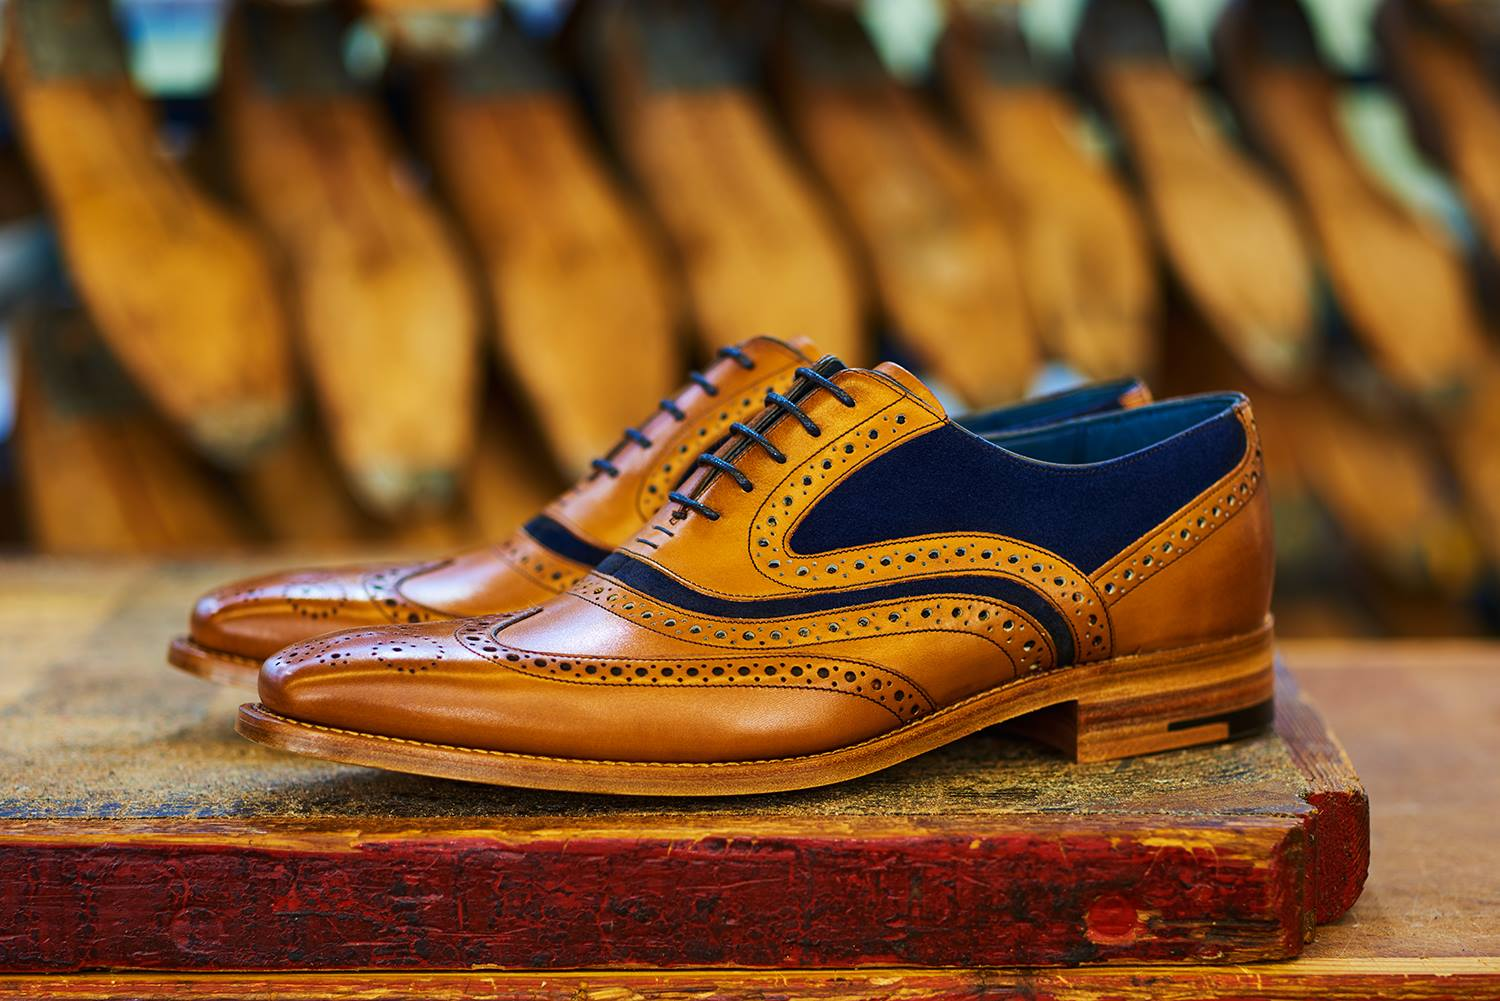 McClean - Most Favorite Men's Brown Wedding Shoe by Barker